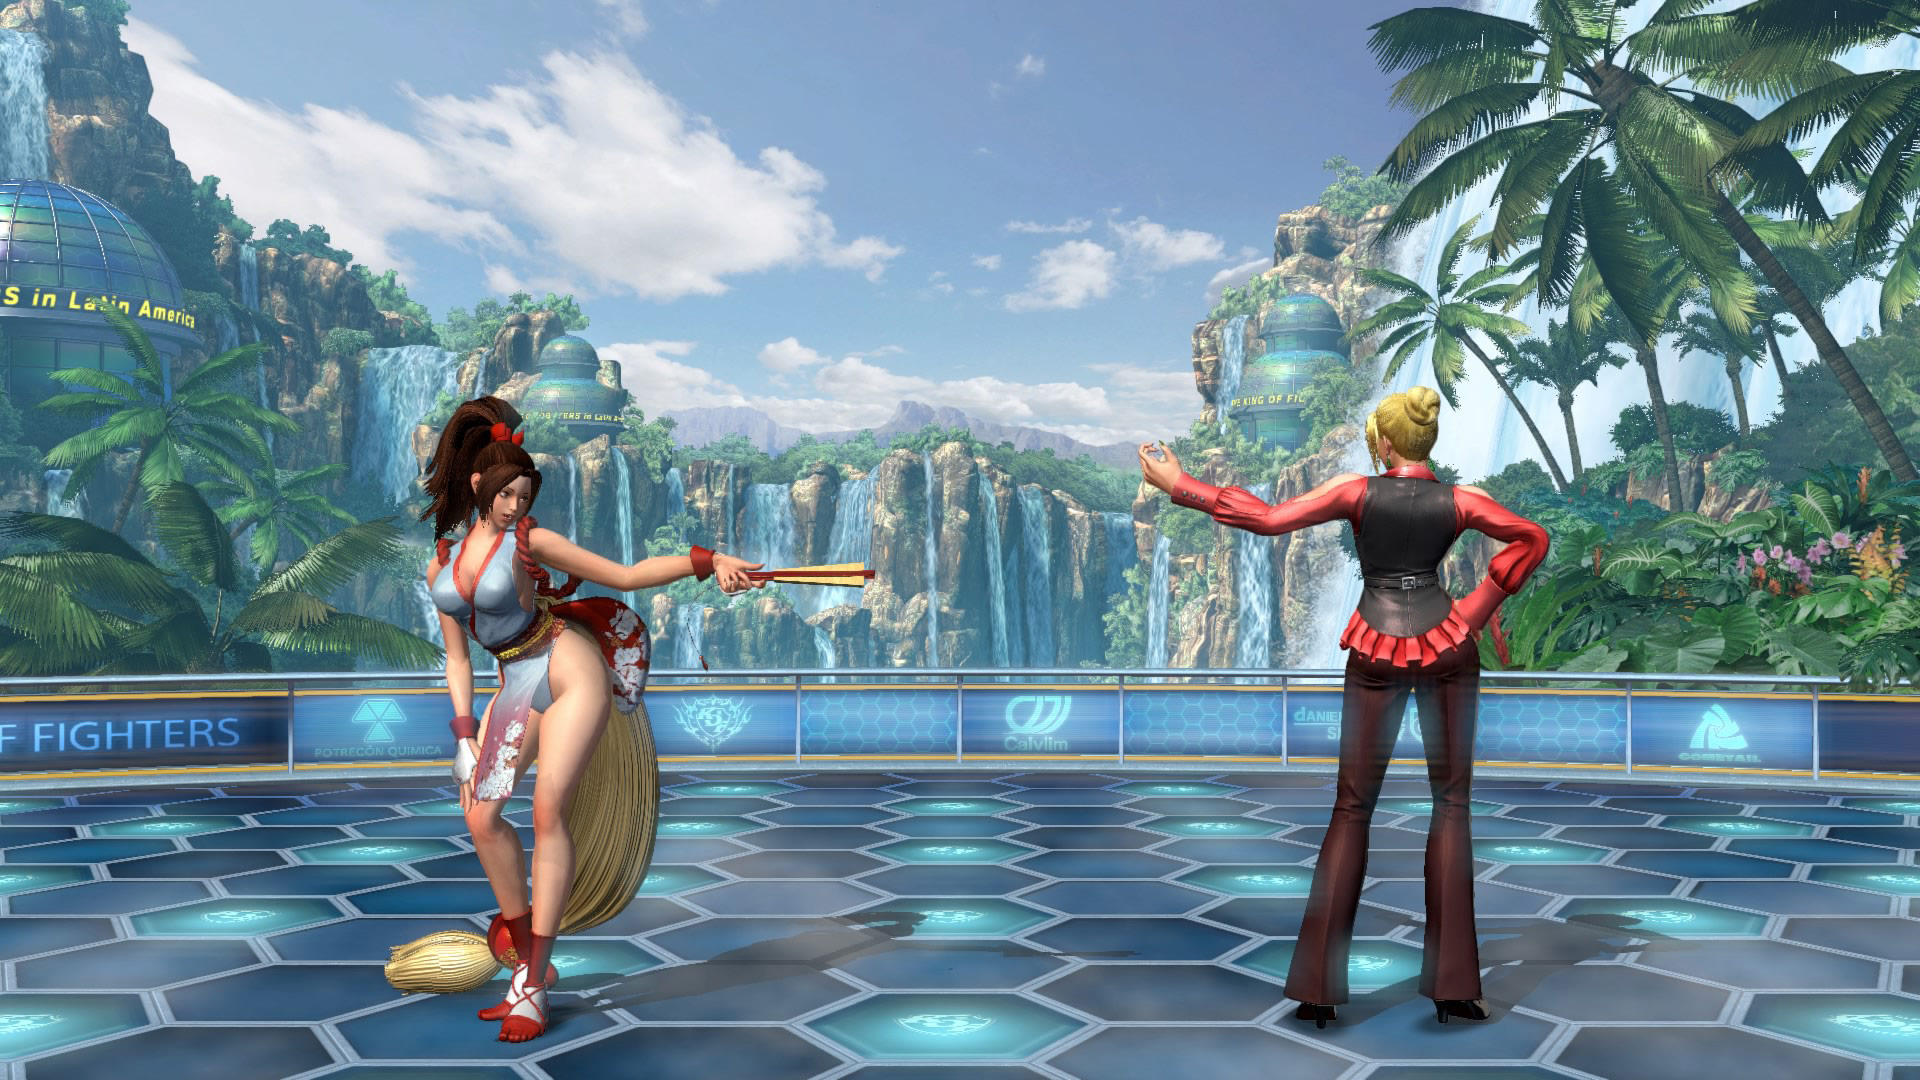 King of Fighters 14 1.10 graphics update 31 out of 60 image gallery